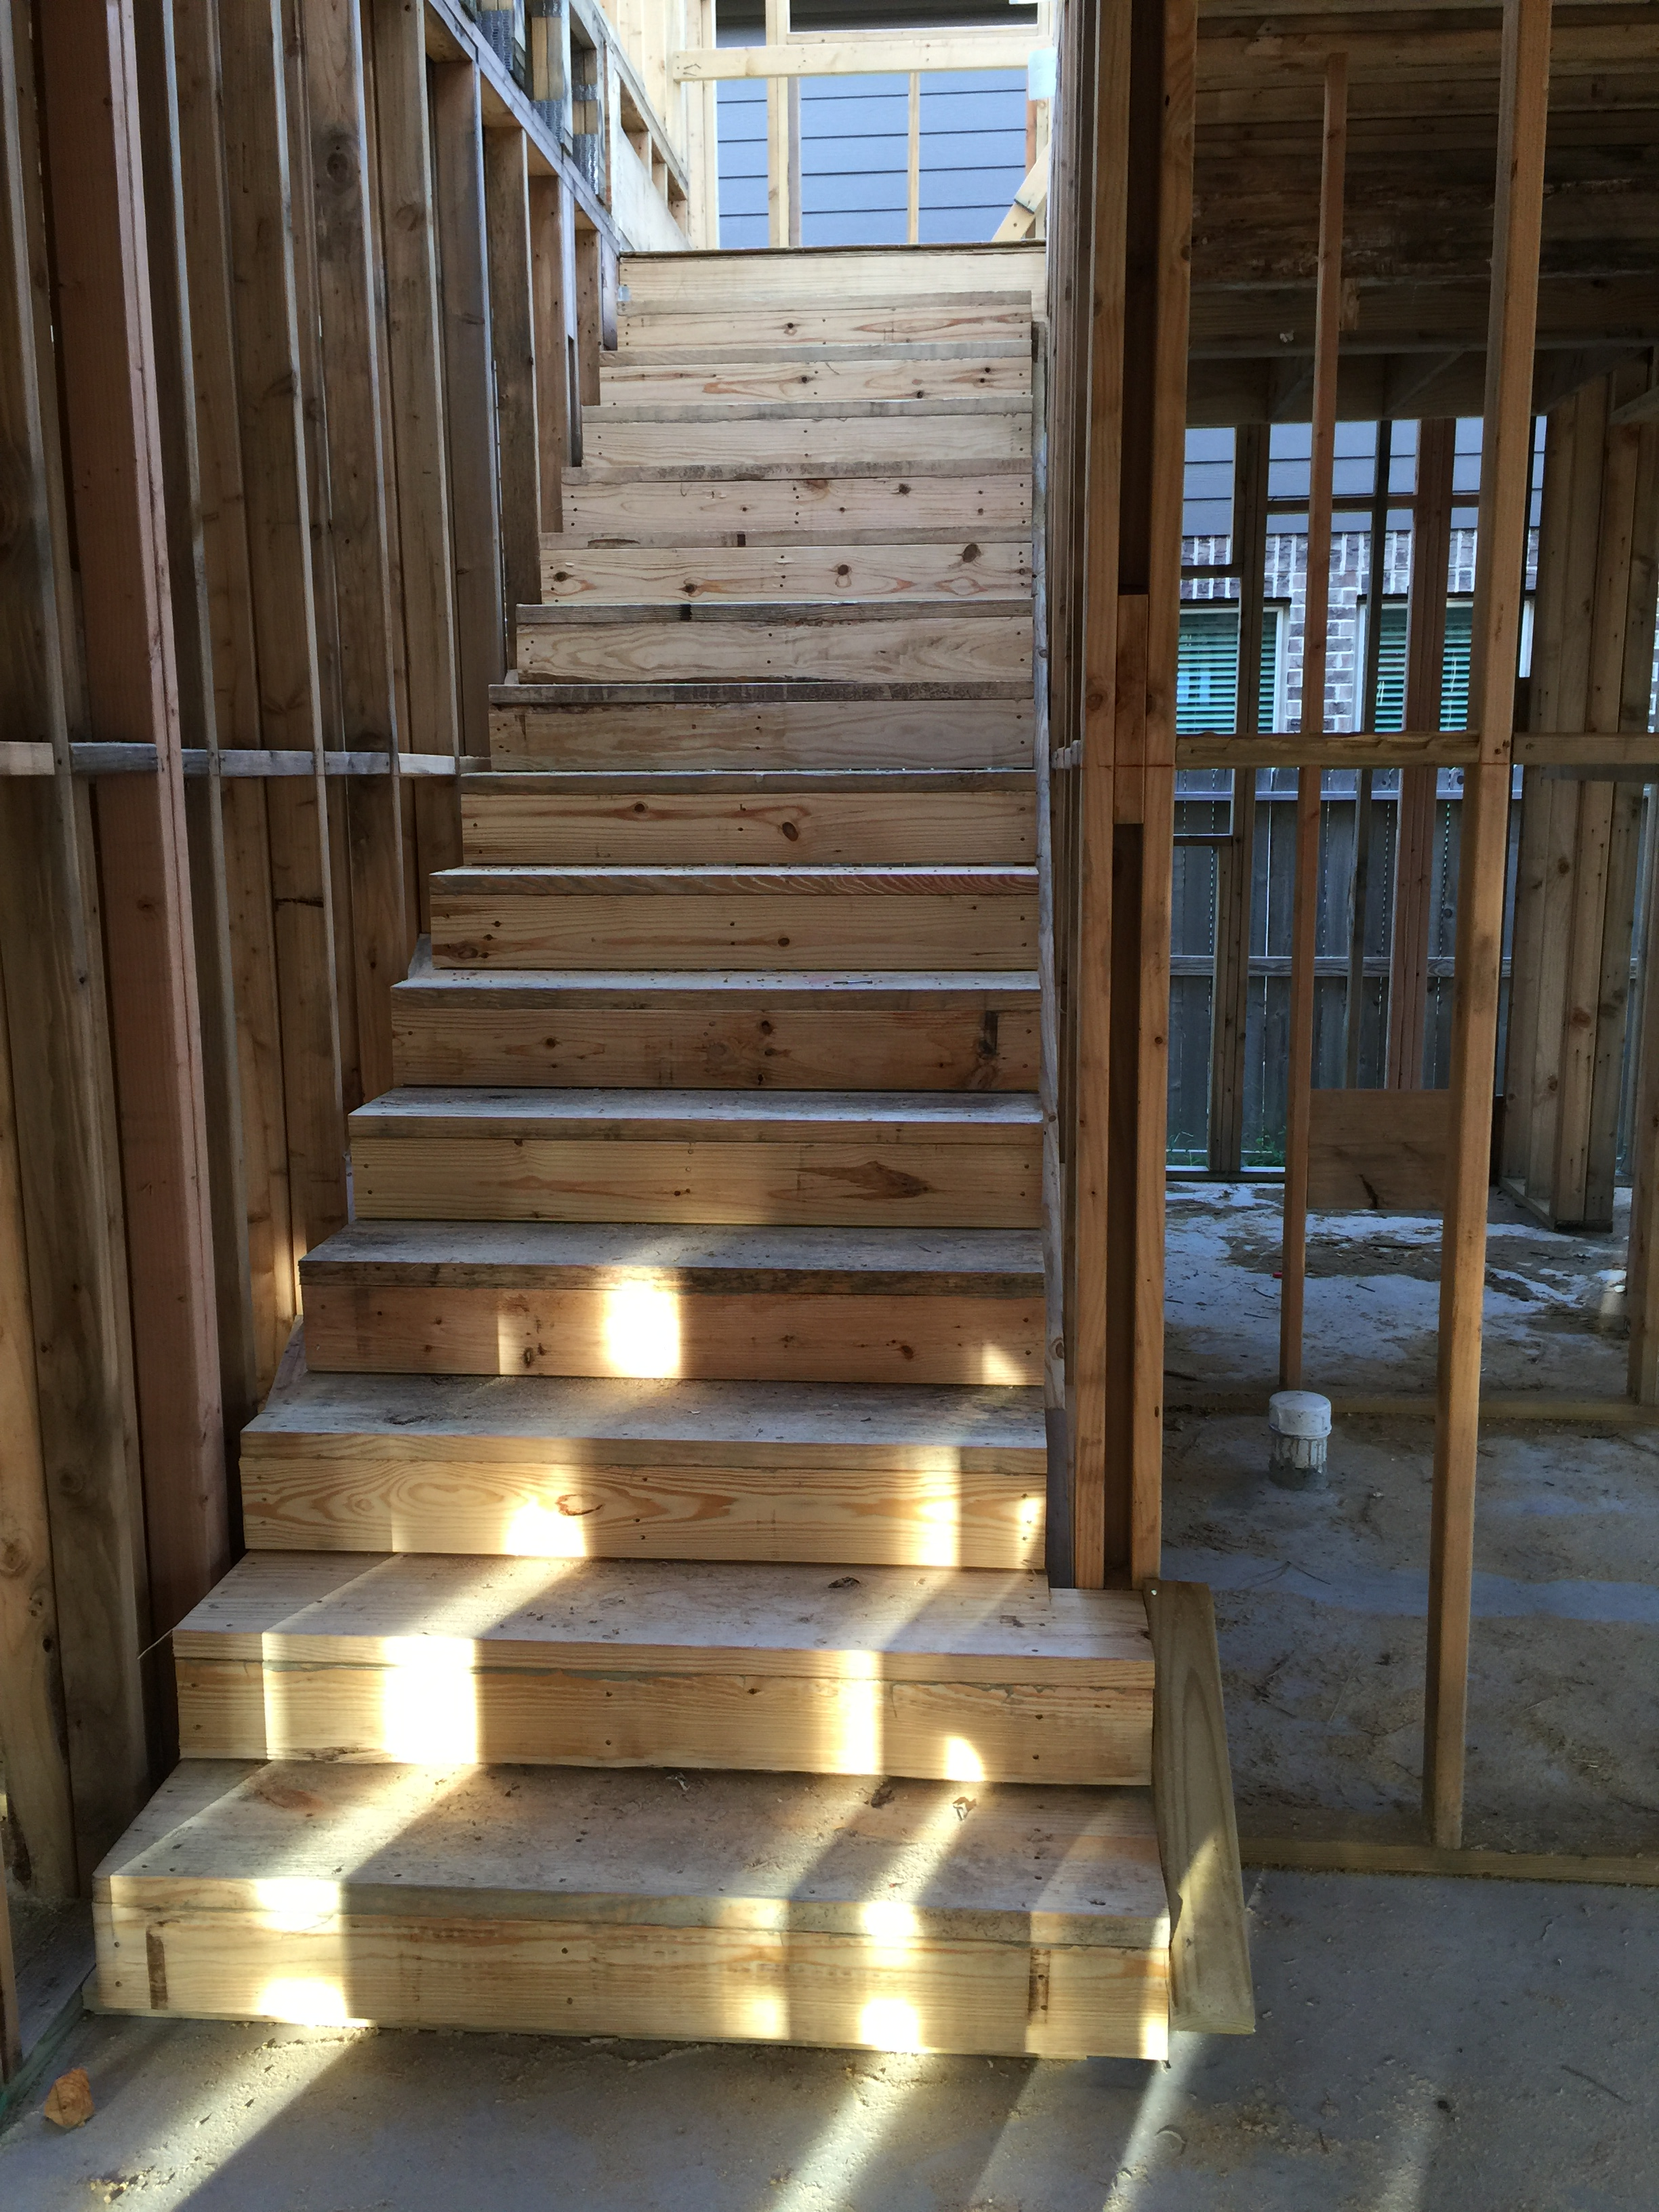 Stairs were just put in this week (as opposed the ladder which was making me a little nervous last week!)